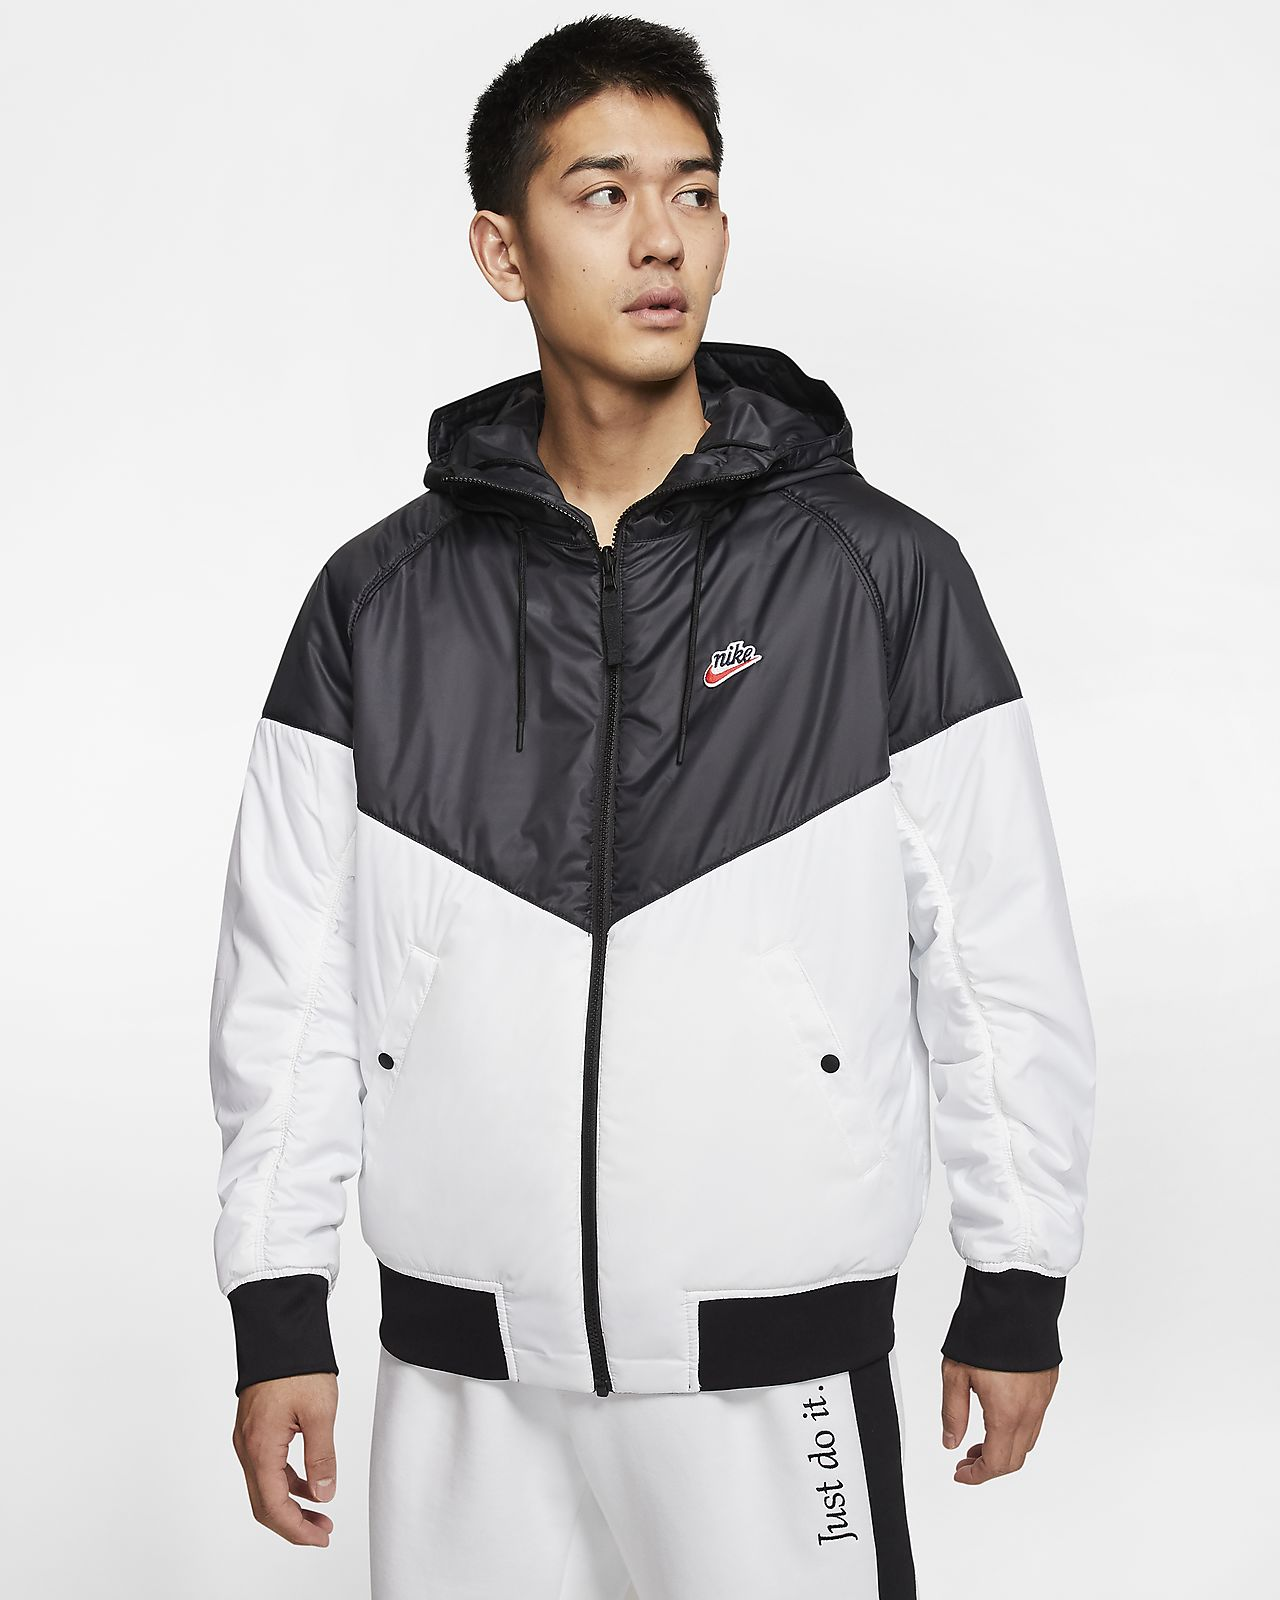 NIKE GIACCA SPORTIVA jacket windrunner Bianco con TASCHE a